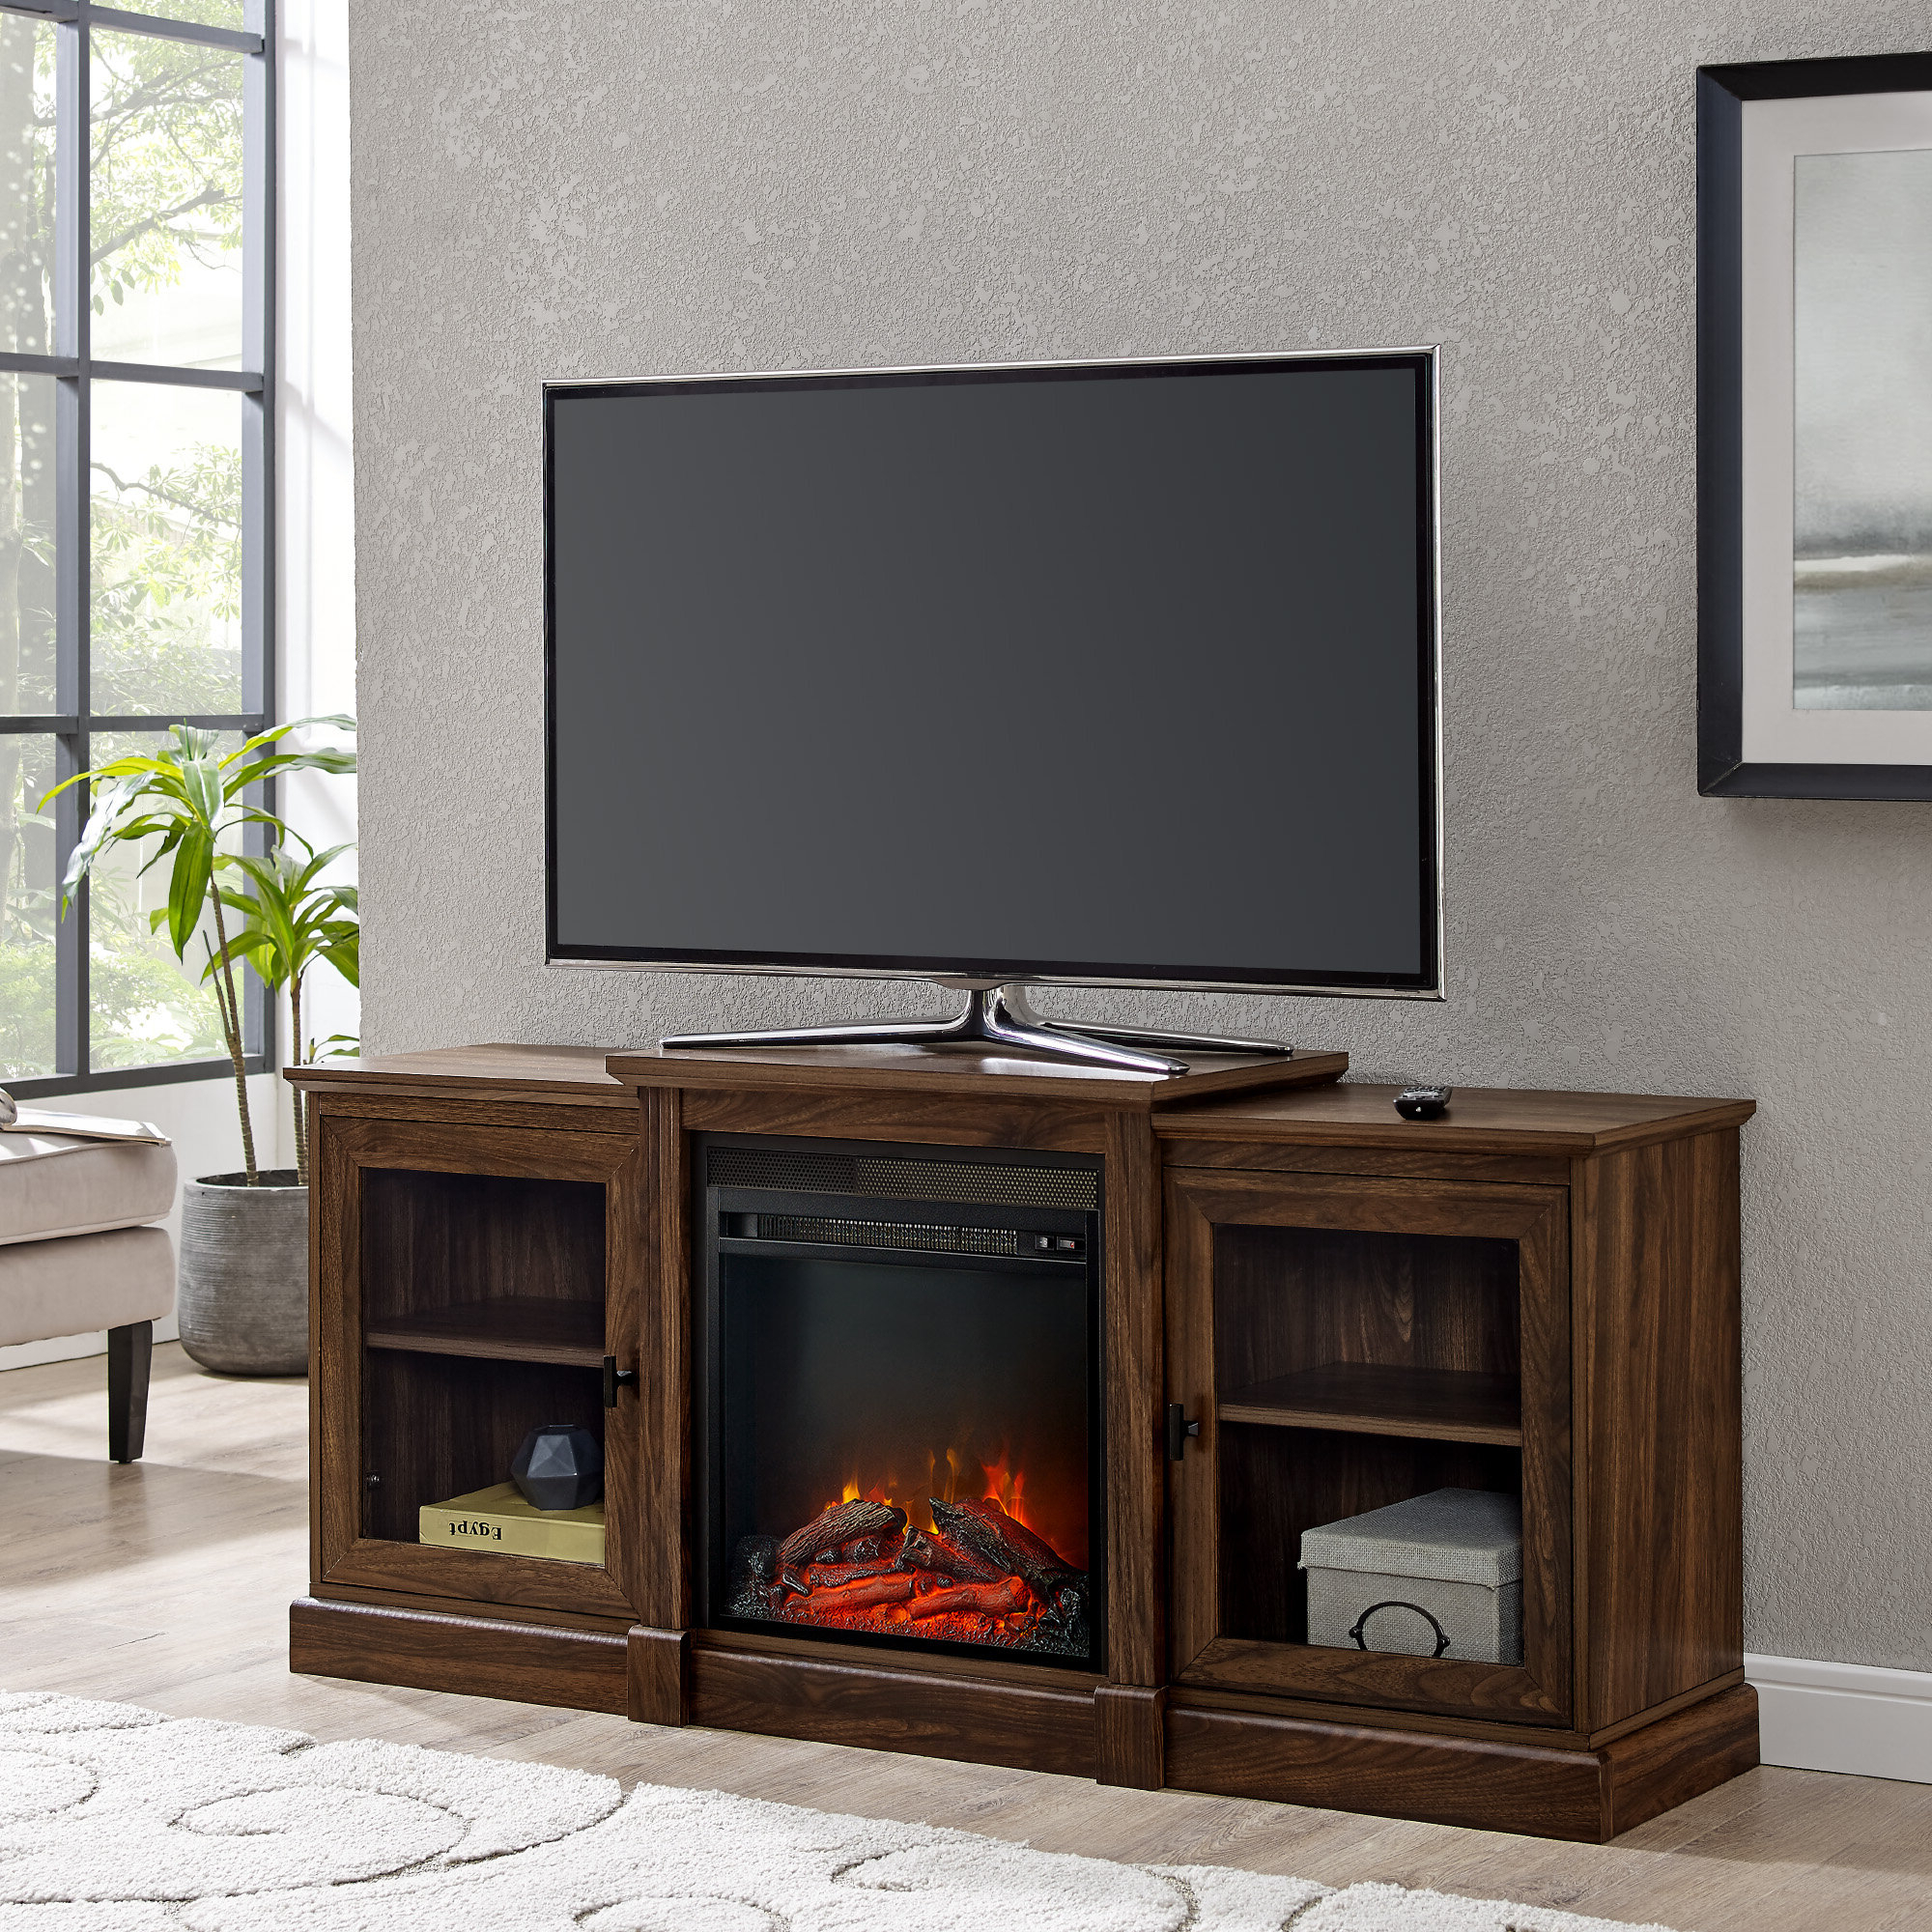 """Well Liked Totally Tv Stands For Tvs Up To 65"""" Regarding 65 Inch Tv Stand With Fireplace (View 1 of 25)"""